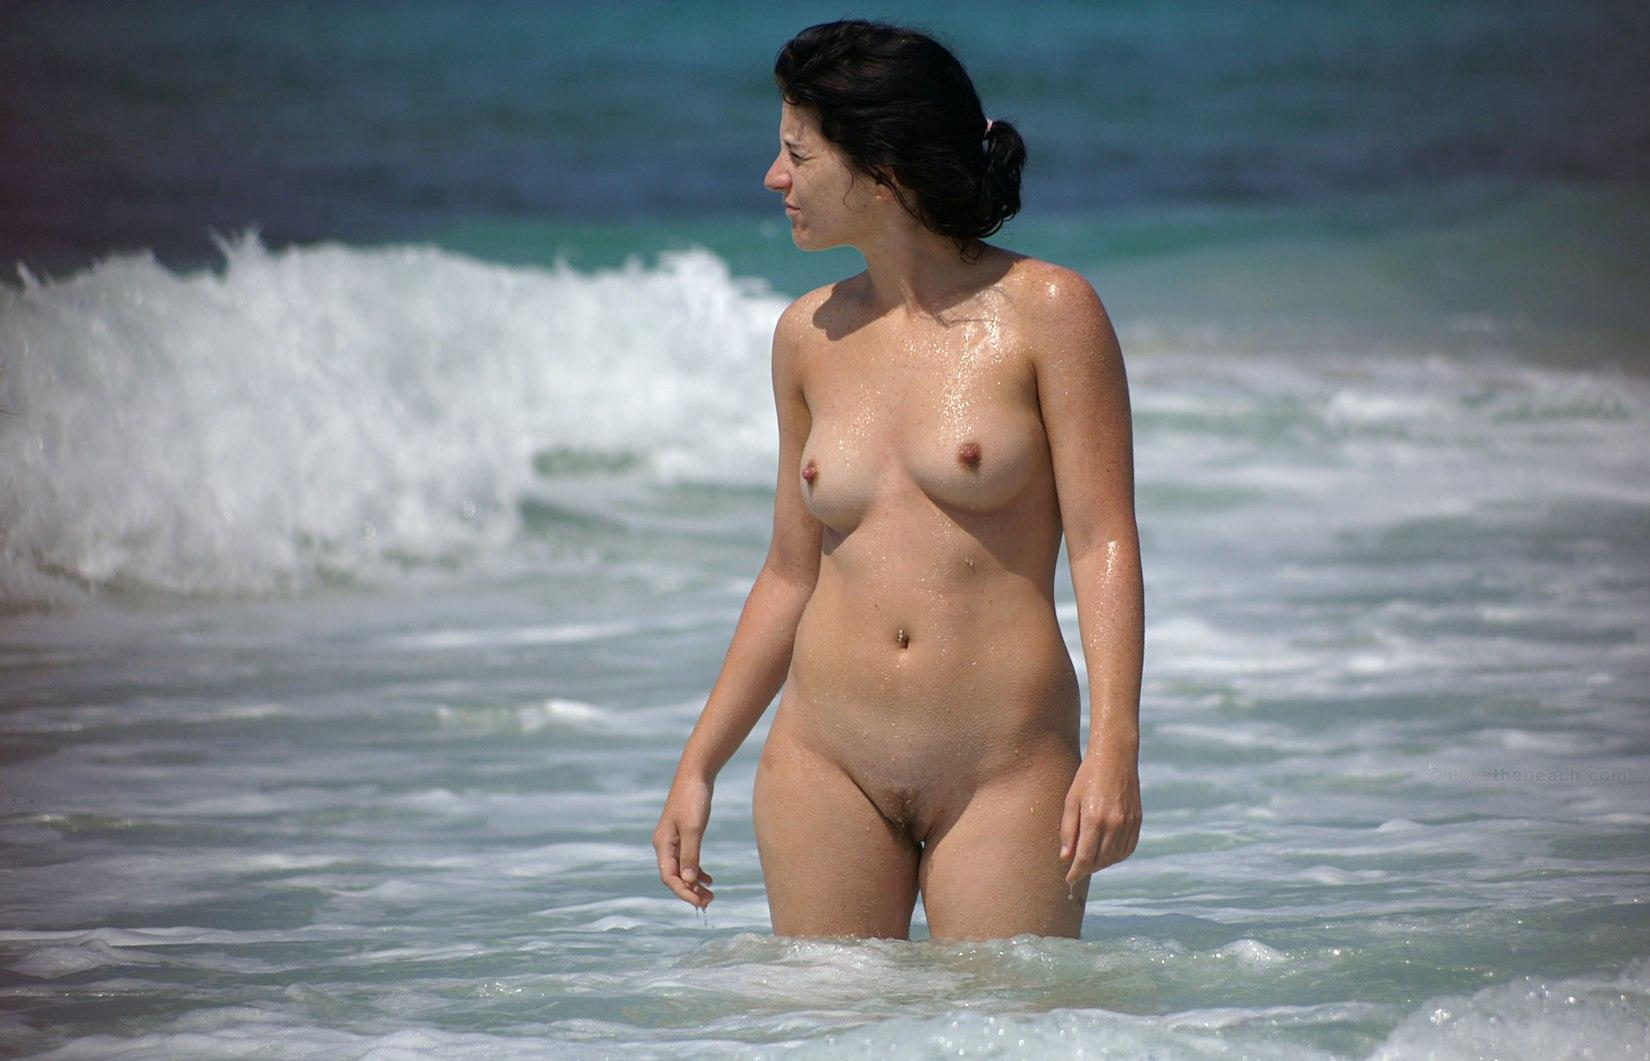 Sexy naked older gal enjoying the surf and waves